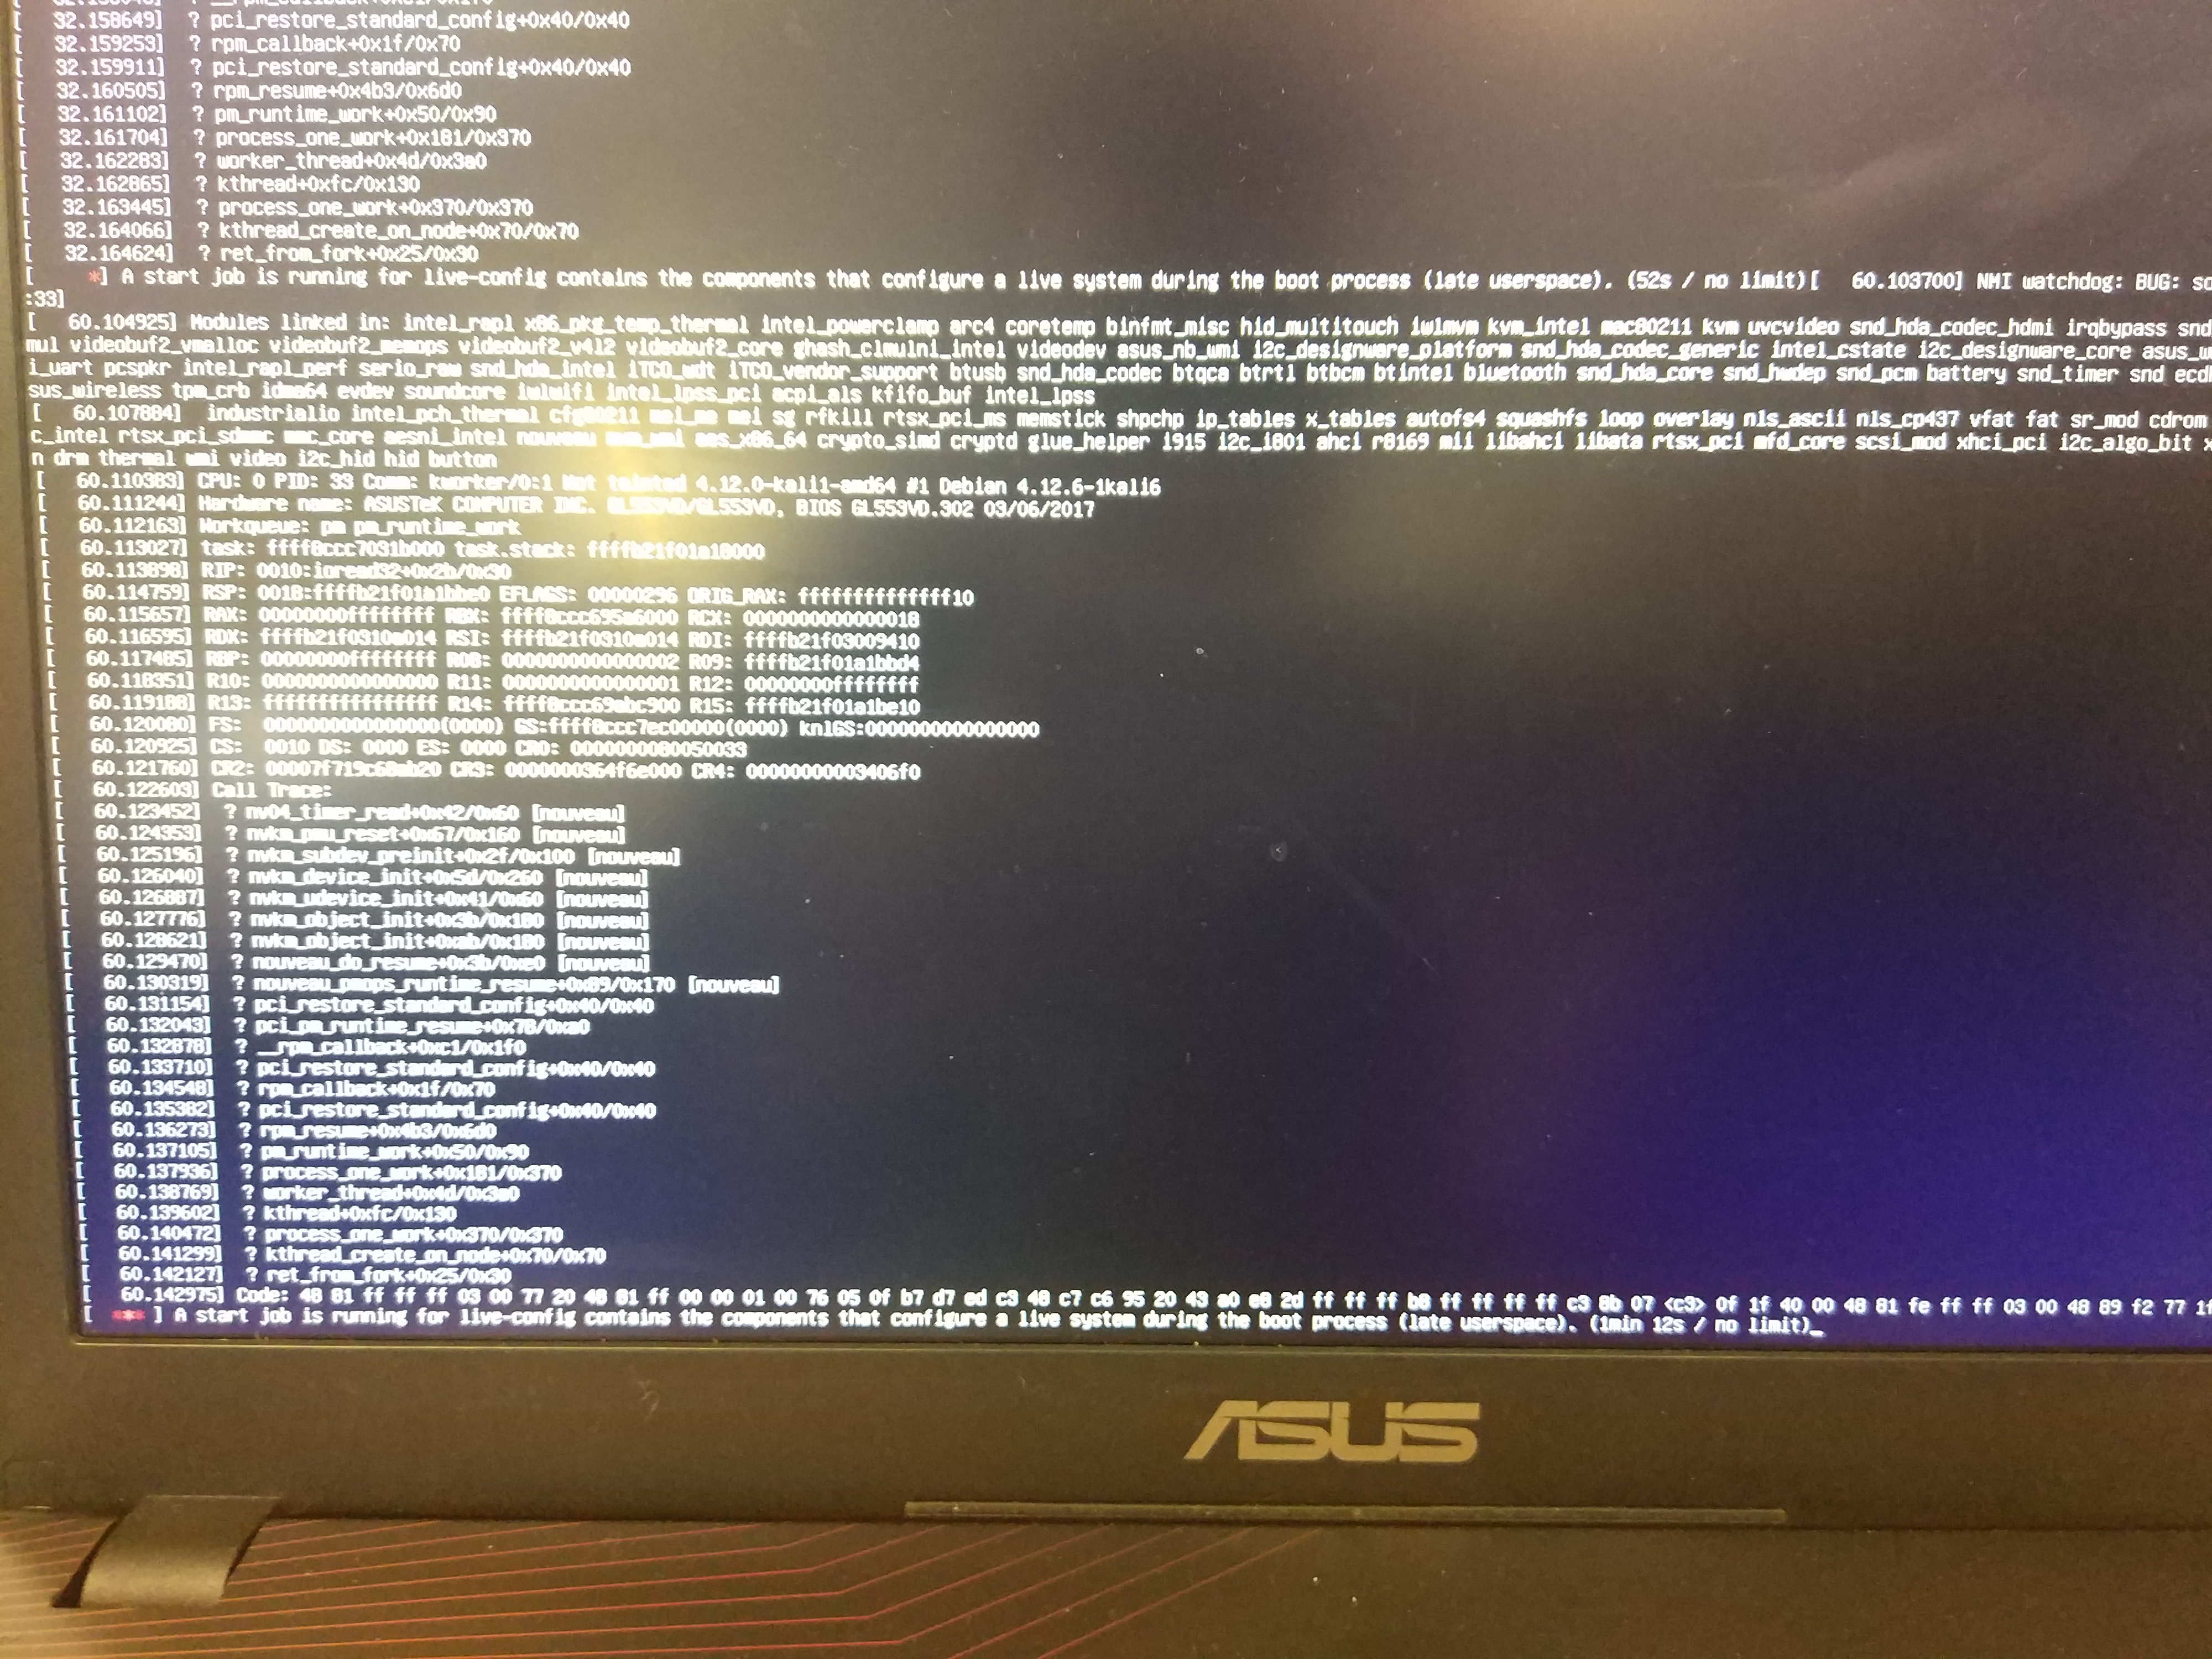 asus laptop cant boot from usb